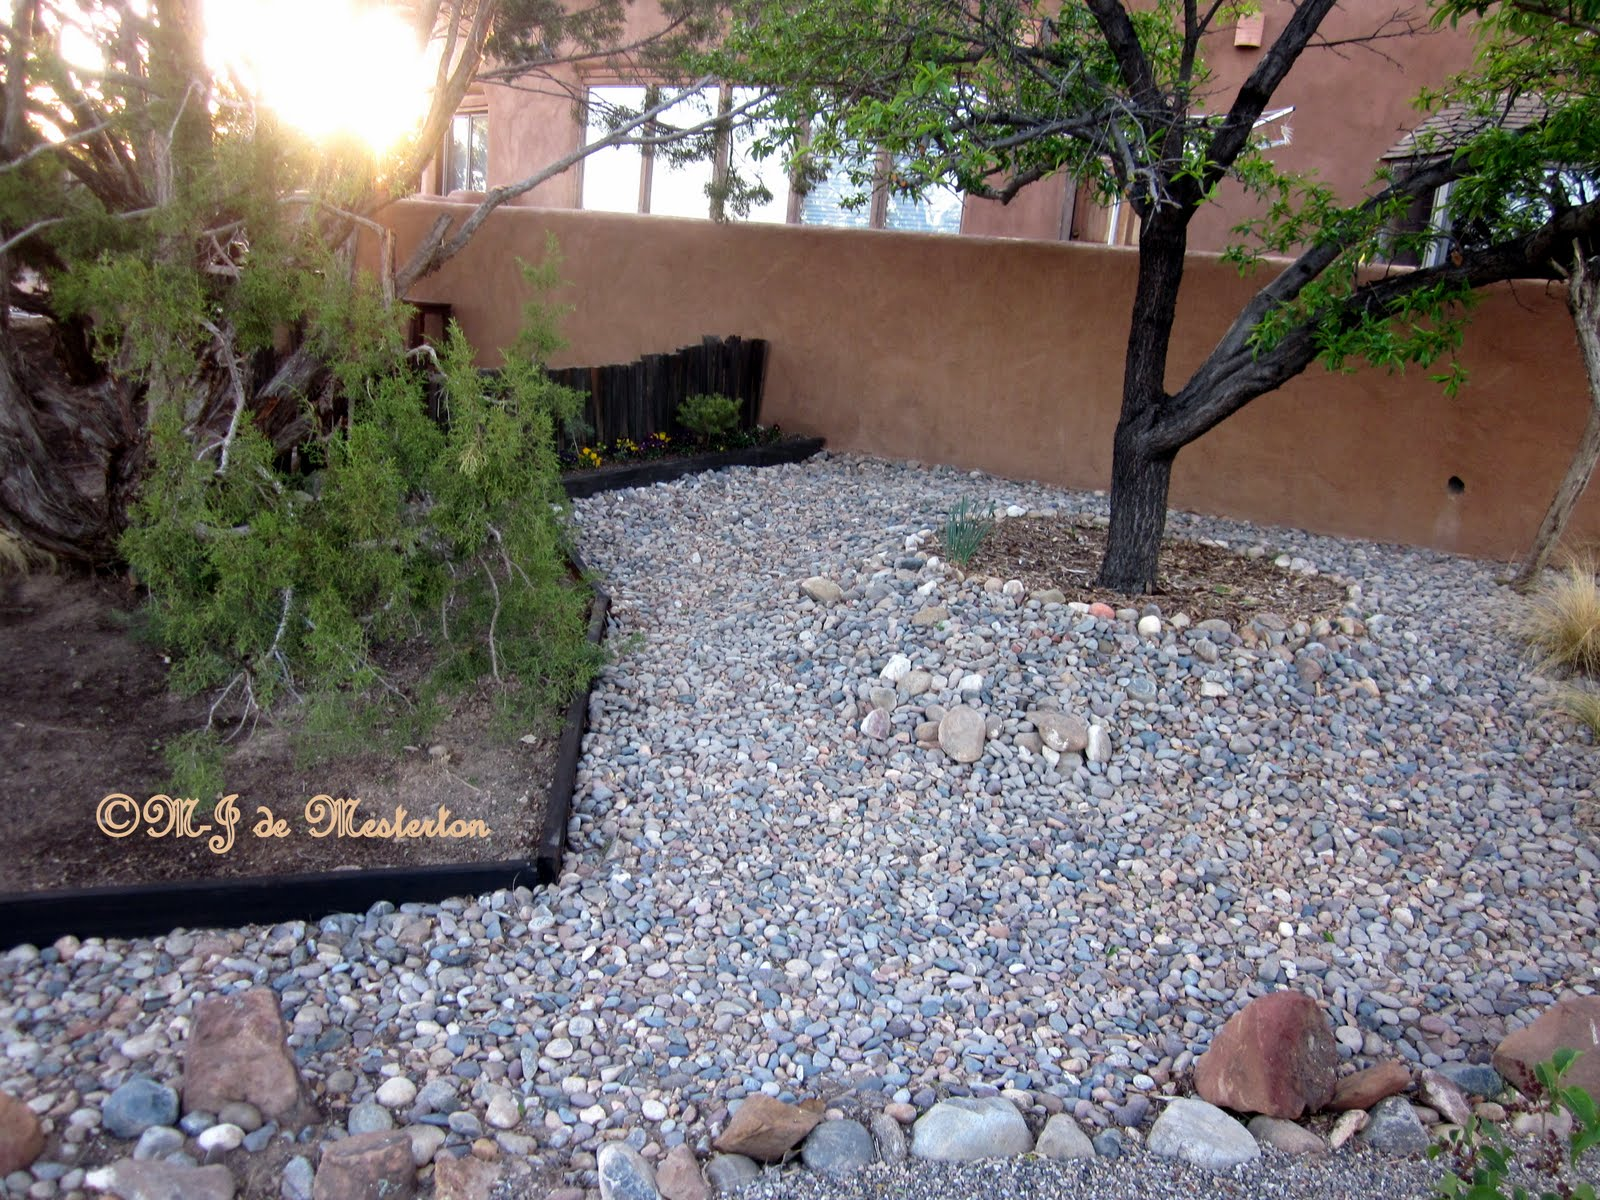 Landscaping With Stone And Mulch : Dry climate landscaping with stone and gravel conserves water